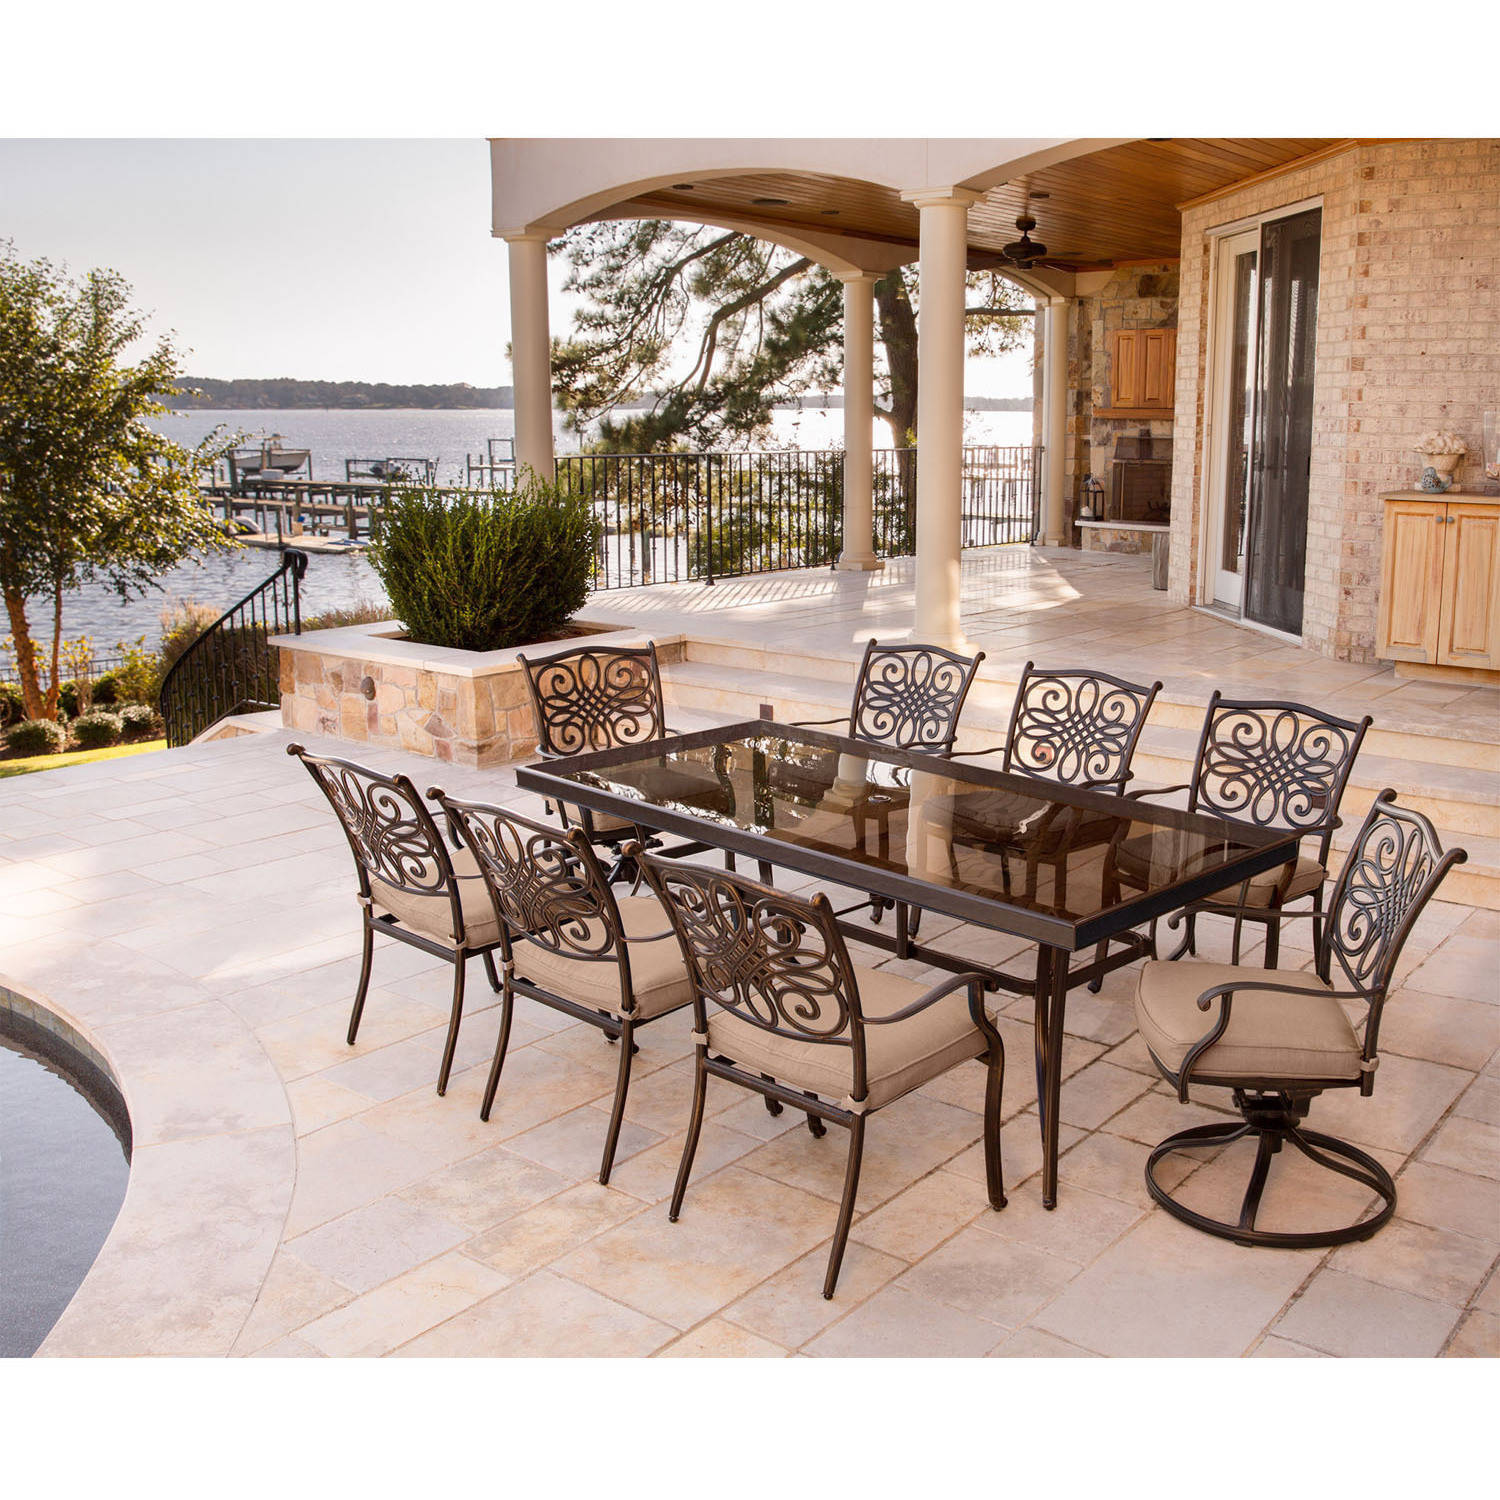 """Hanover Outdoor Traditions 9-Piece Dining Set with 42"""" x 84"""" Glass-Top Table, 6 Stationary Chairs and 2 Swivel Rockers"""